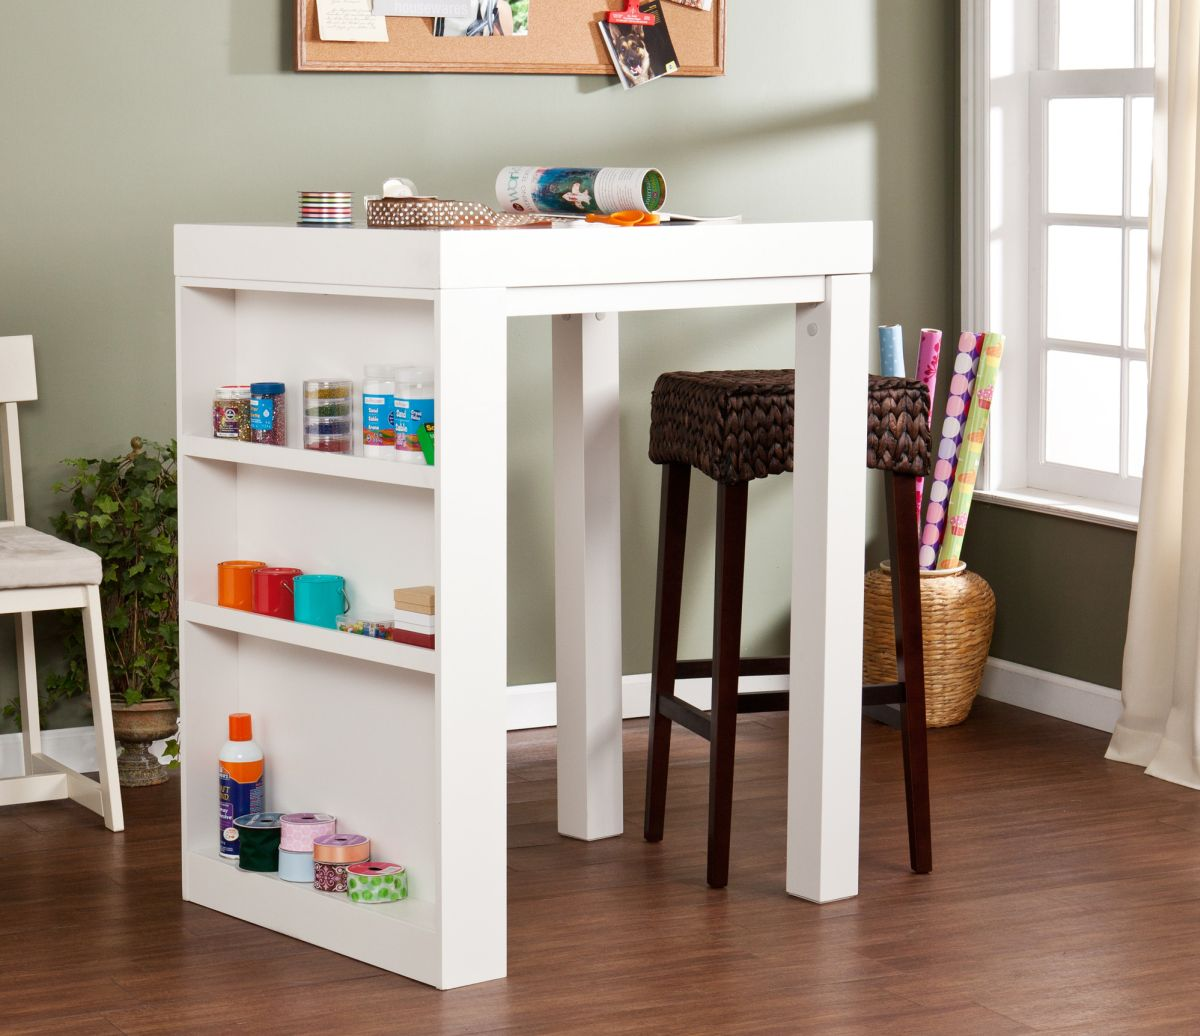 & Craft Tables With Storage Attempting To Organize Your Creativity